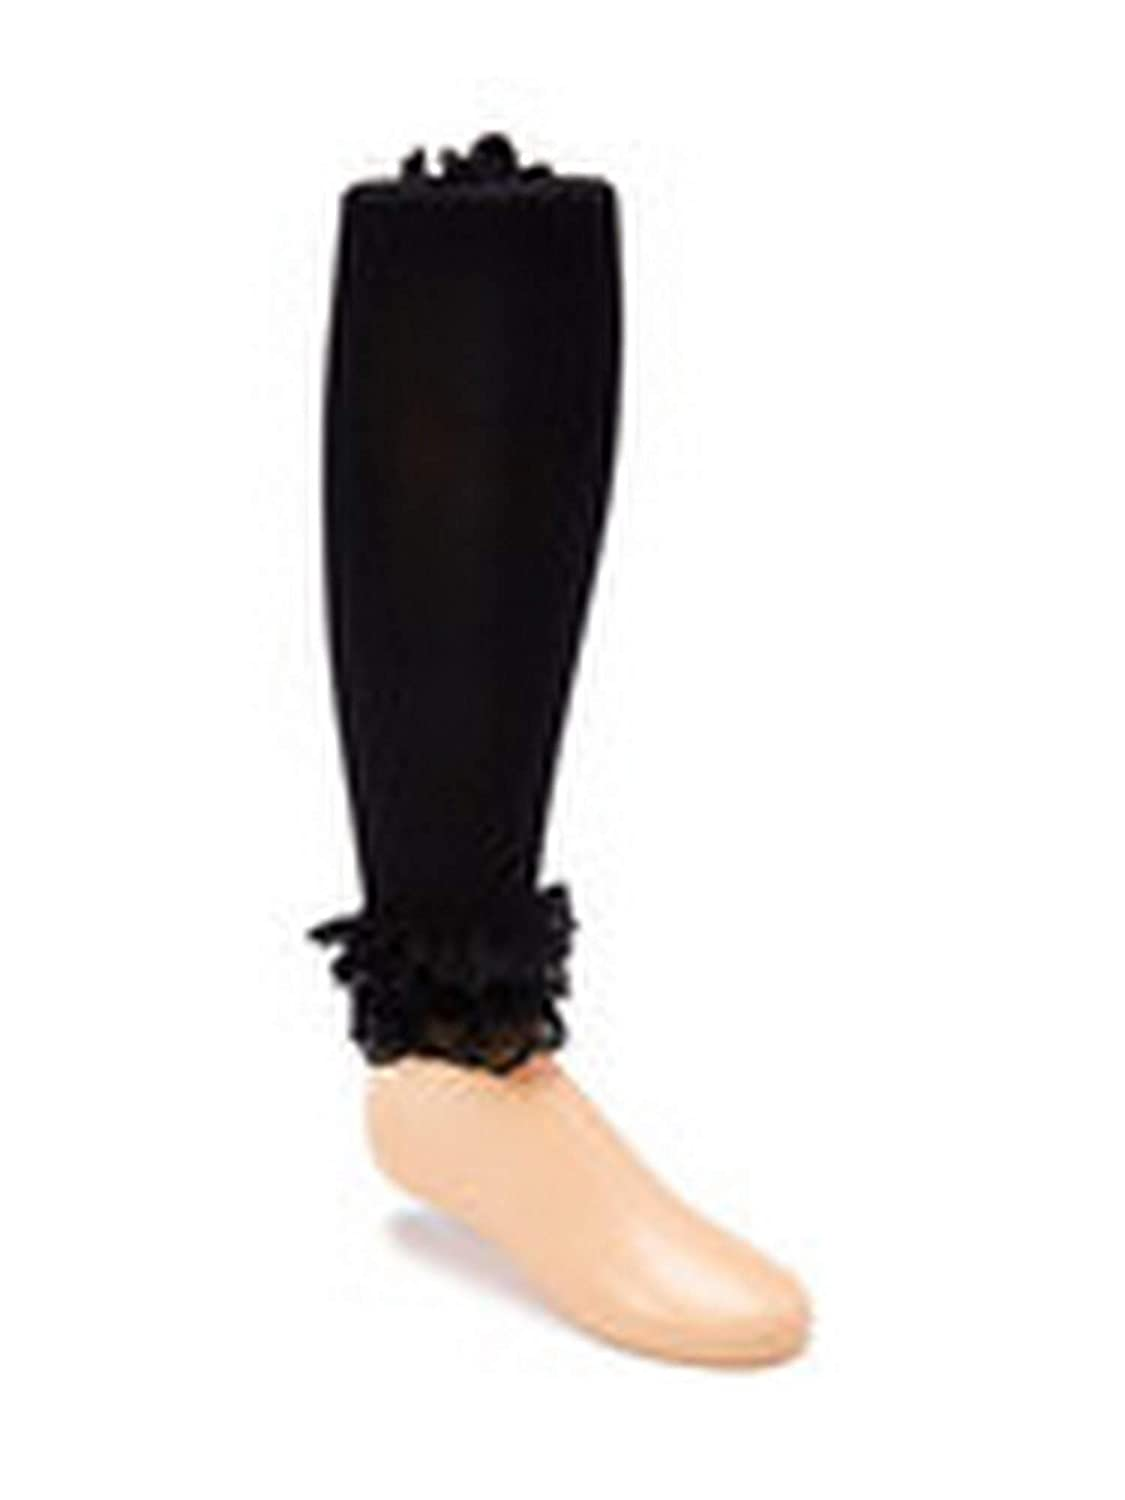 Wenchoice Girls Black Solid Color Ruffle Lace Trim Stylish Tights 1-15